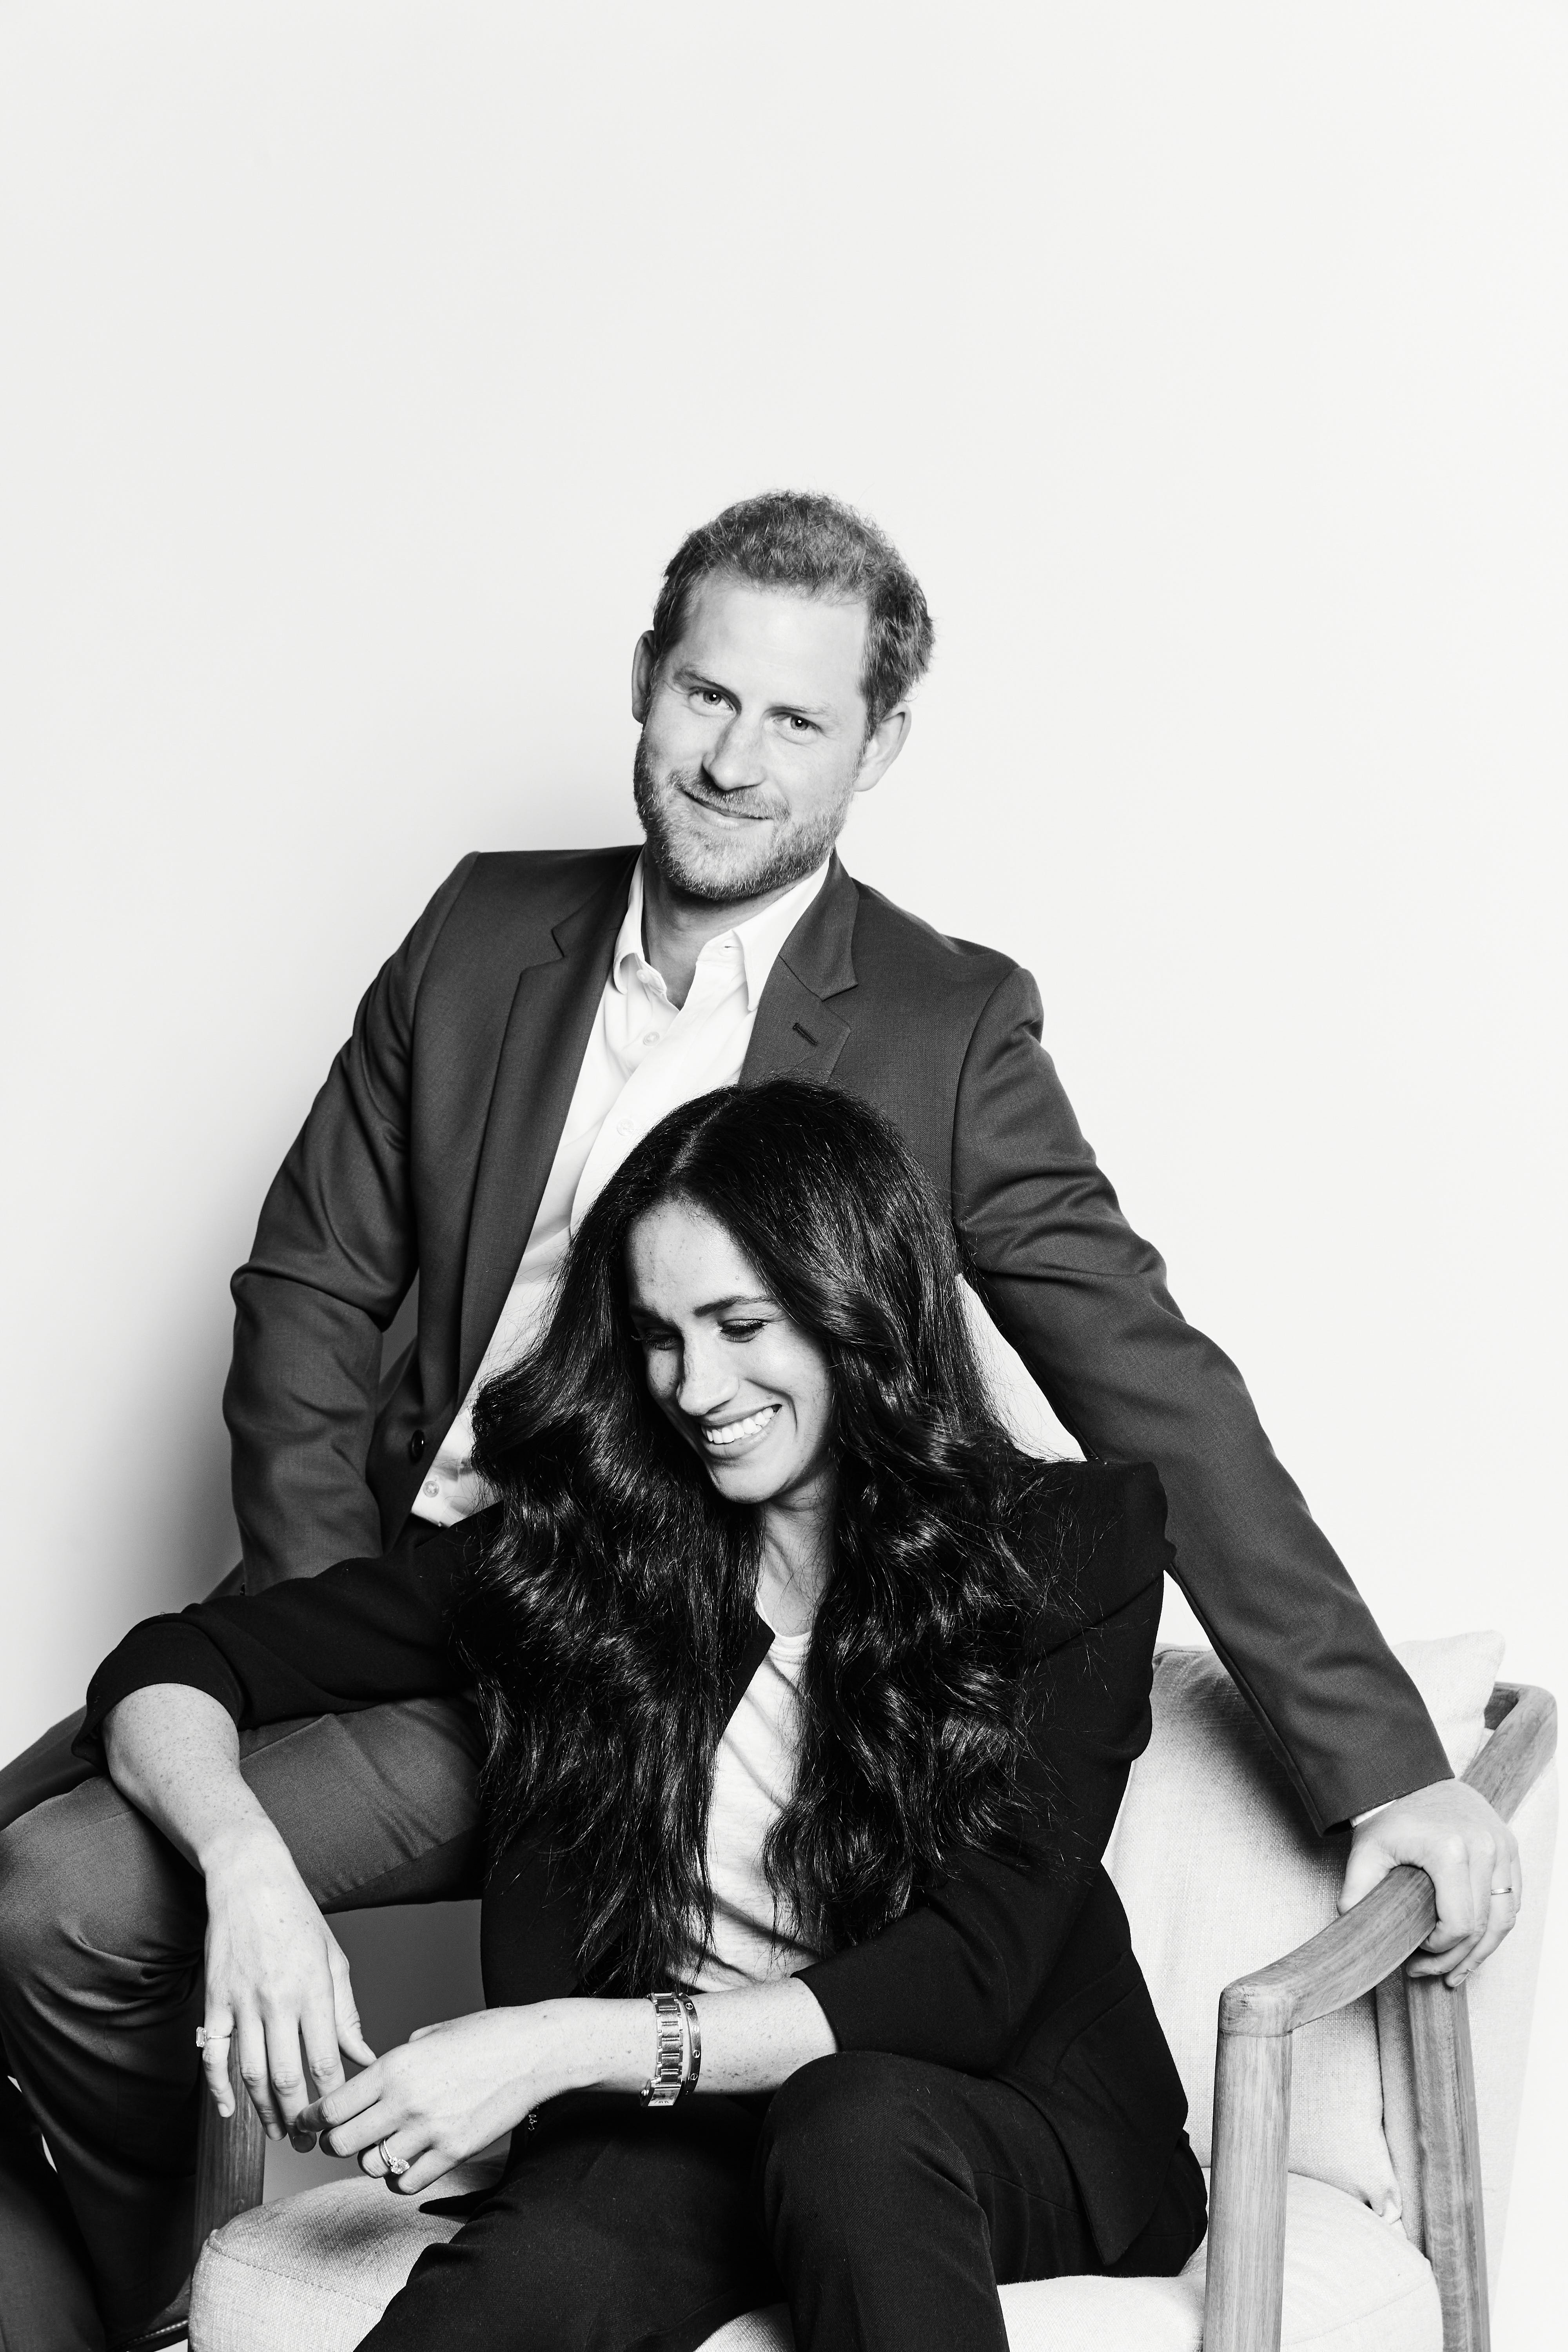 Prince Harry on fighting racism, how Meghan opened his eyes:  Ignorance is no longer an excuse